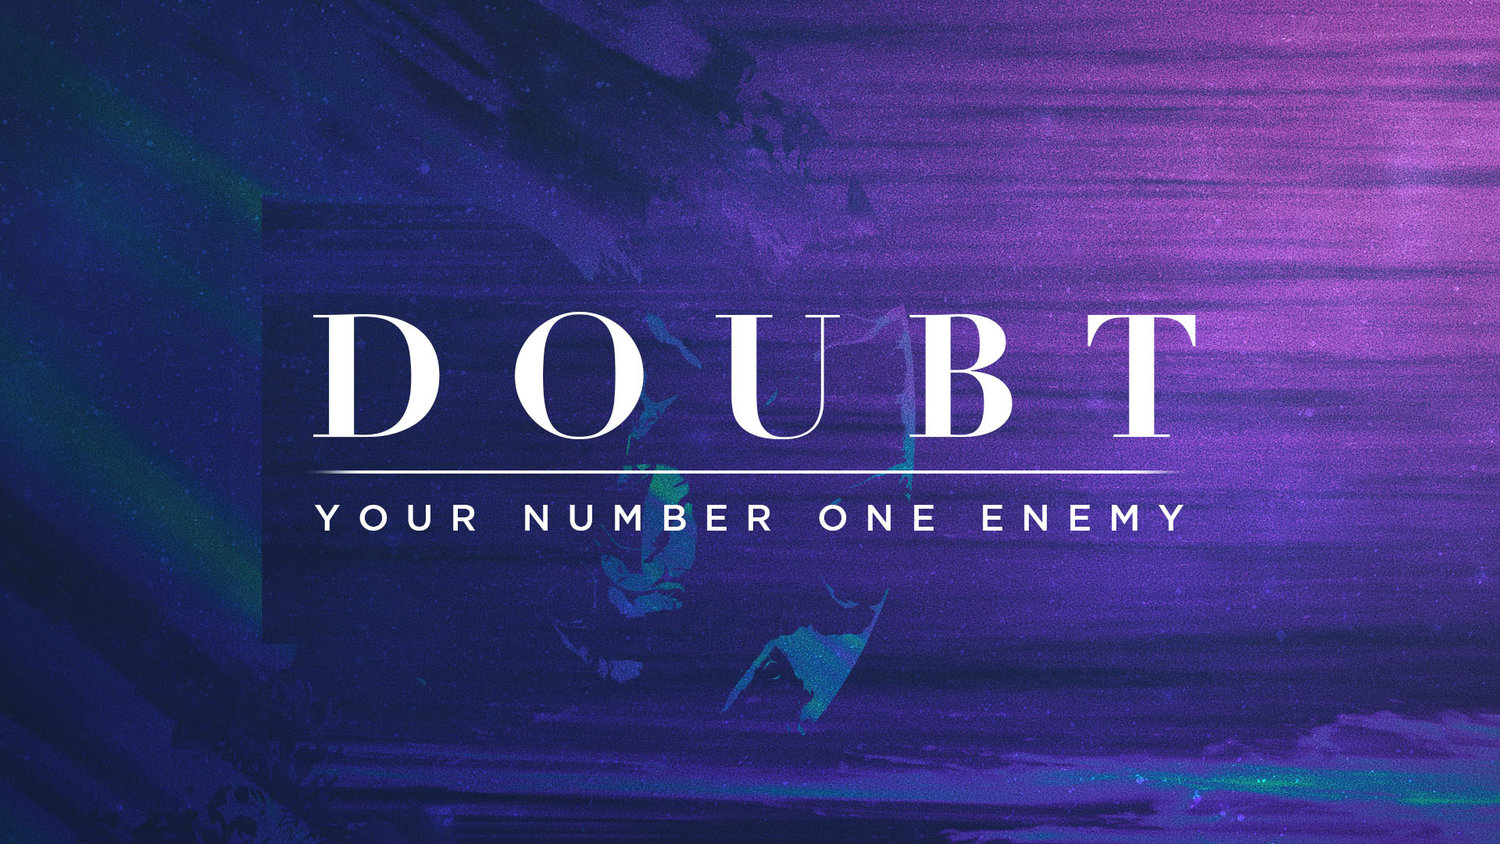 Doubt+Enemy+Graphic+2.jpg